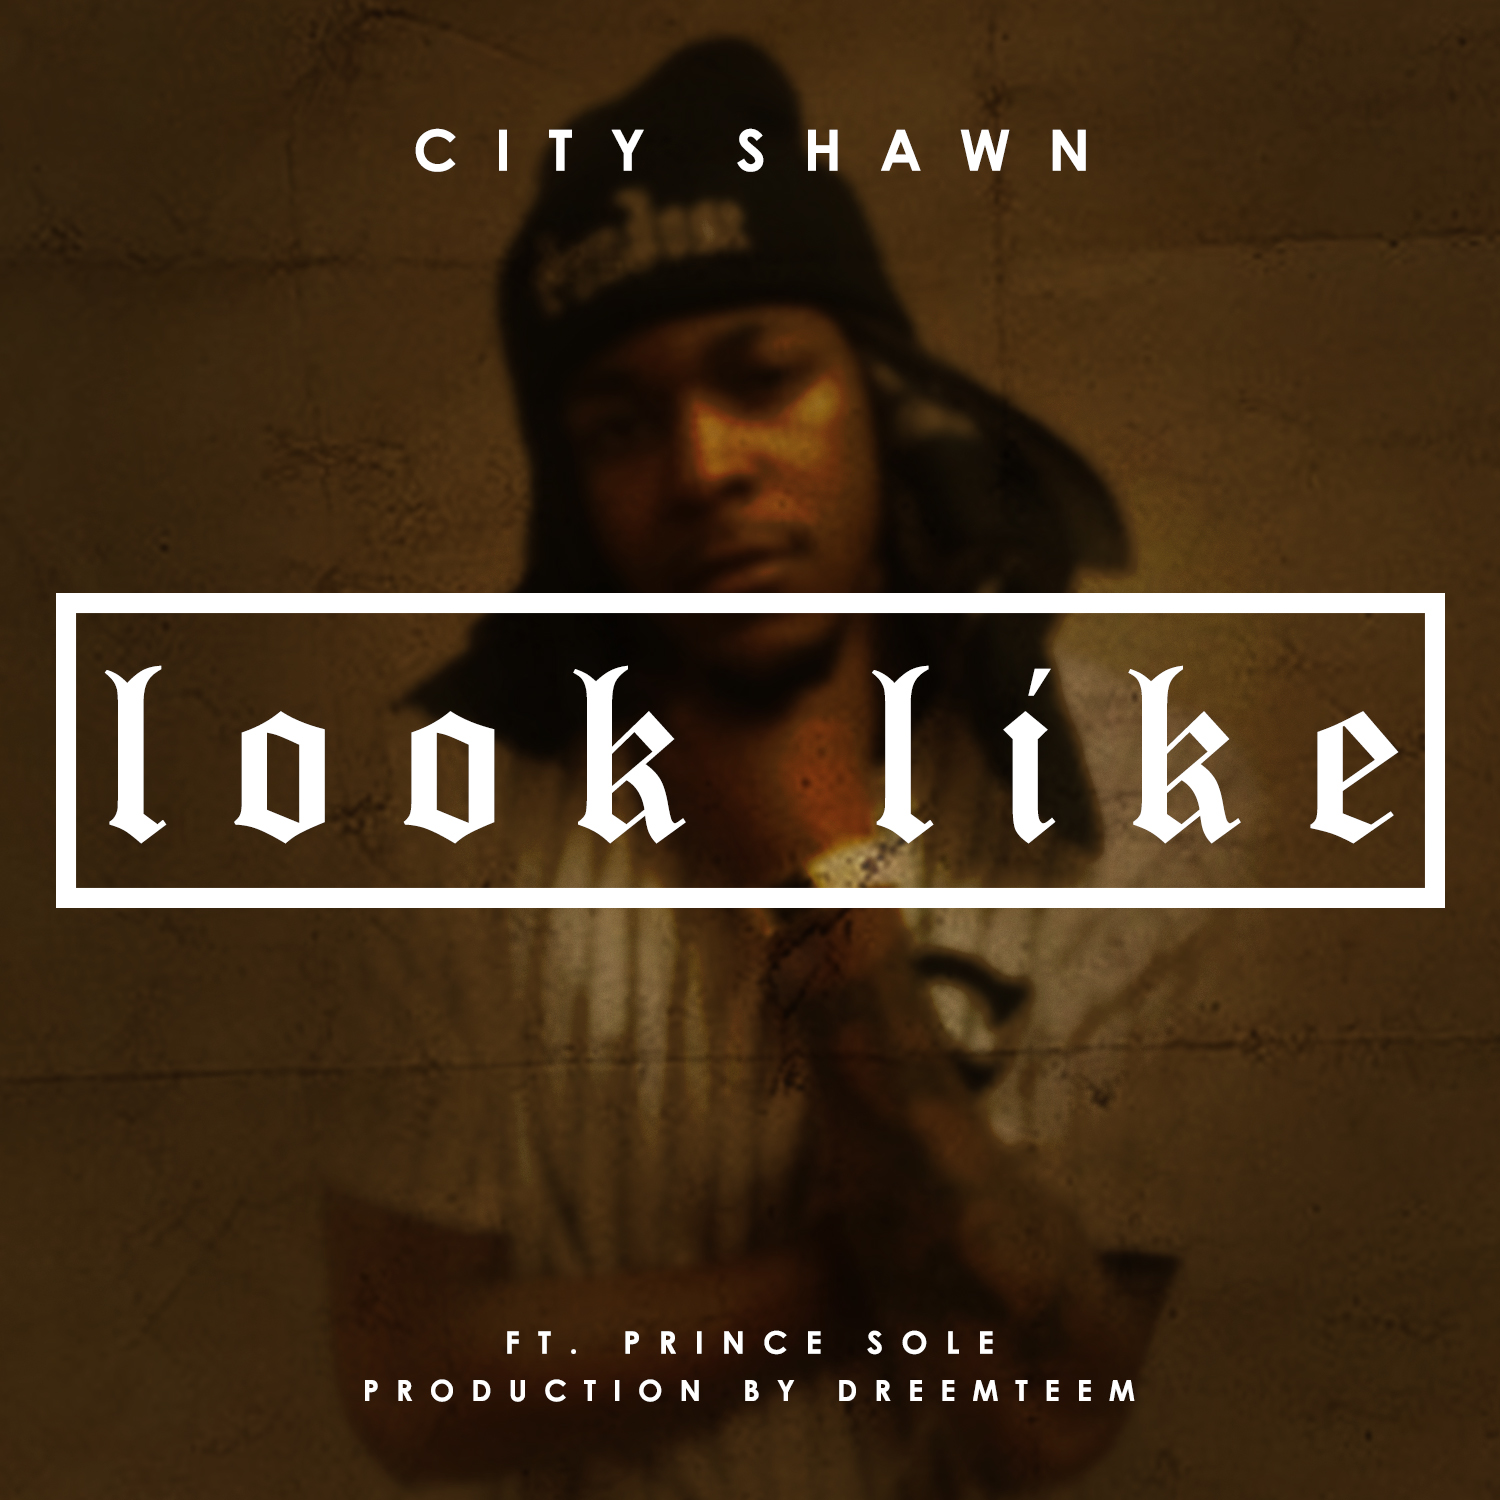 City Shawn ft. Prince Sole - Look Like (prod. Dreem Teem) [Thizzler.com Exclusive]